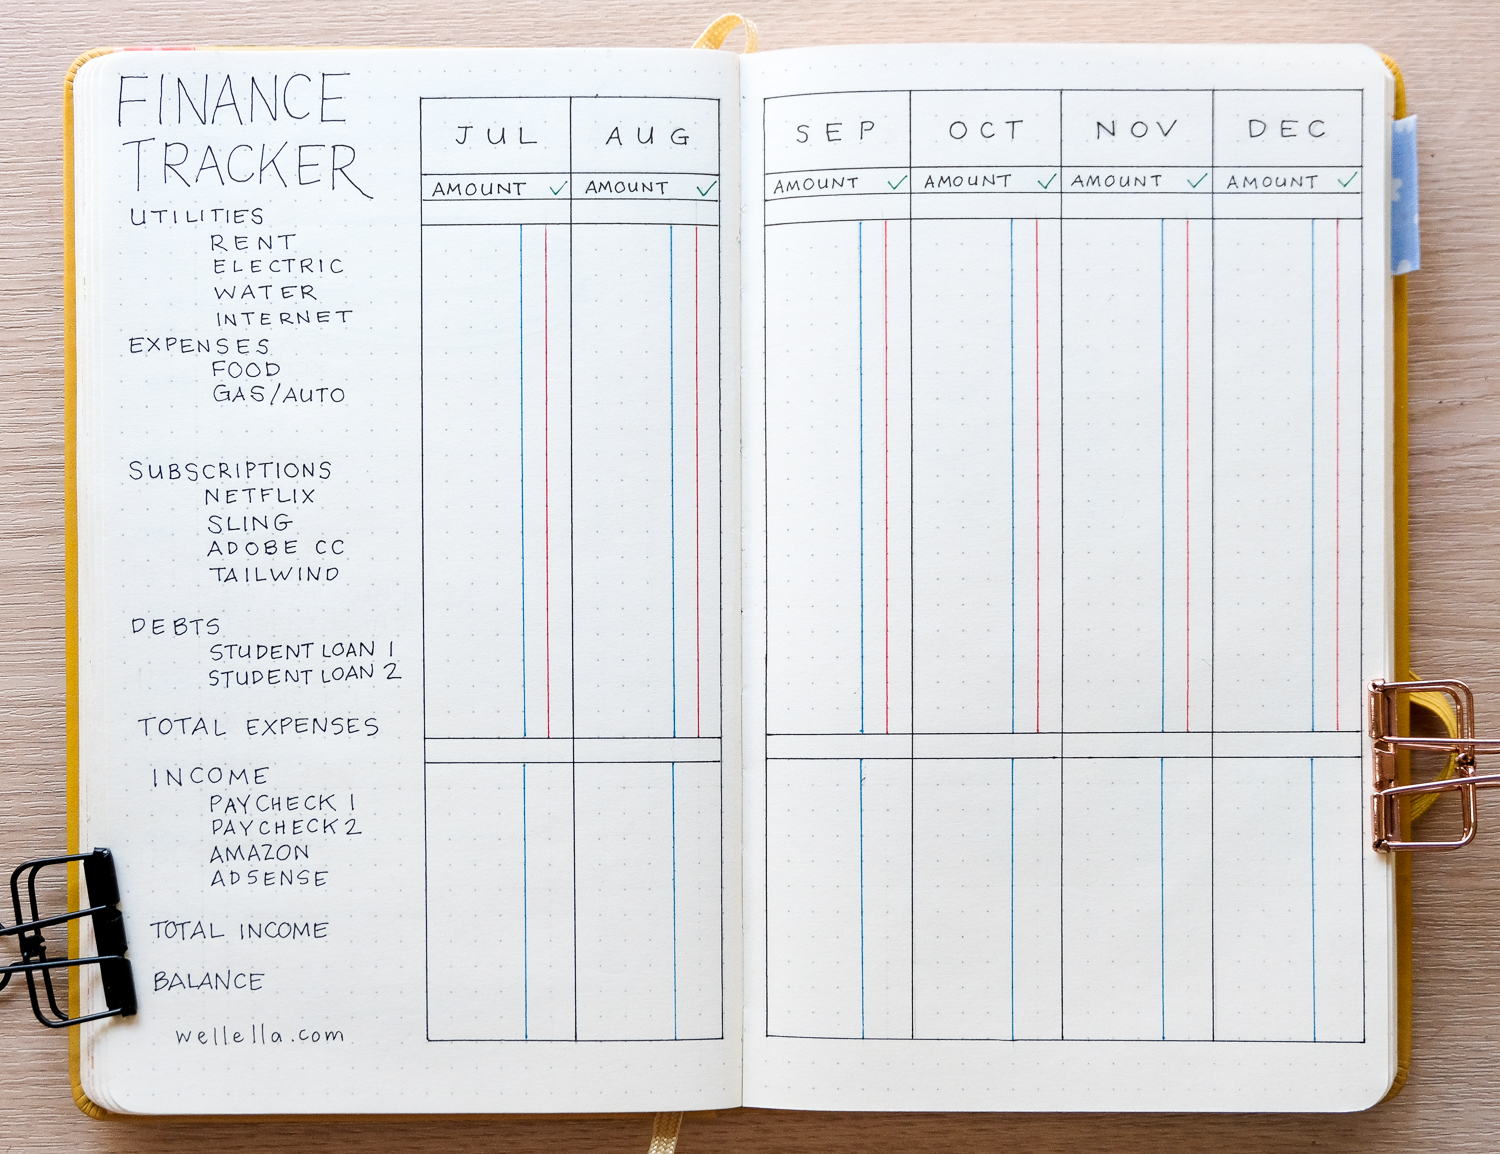 Bullet journal money trackers are a cool and fun way to track your spending, saving, bills, and all your finances. Here are some ways you can keep track of money in your bullet journal.